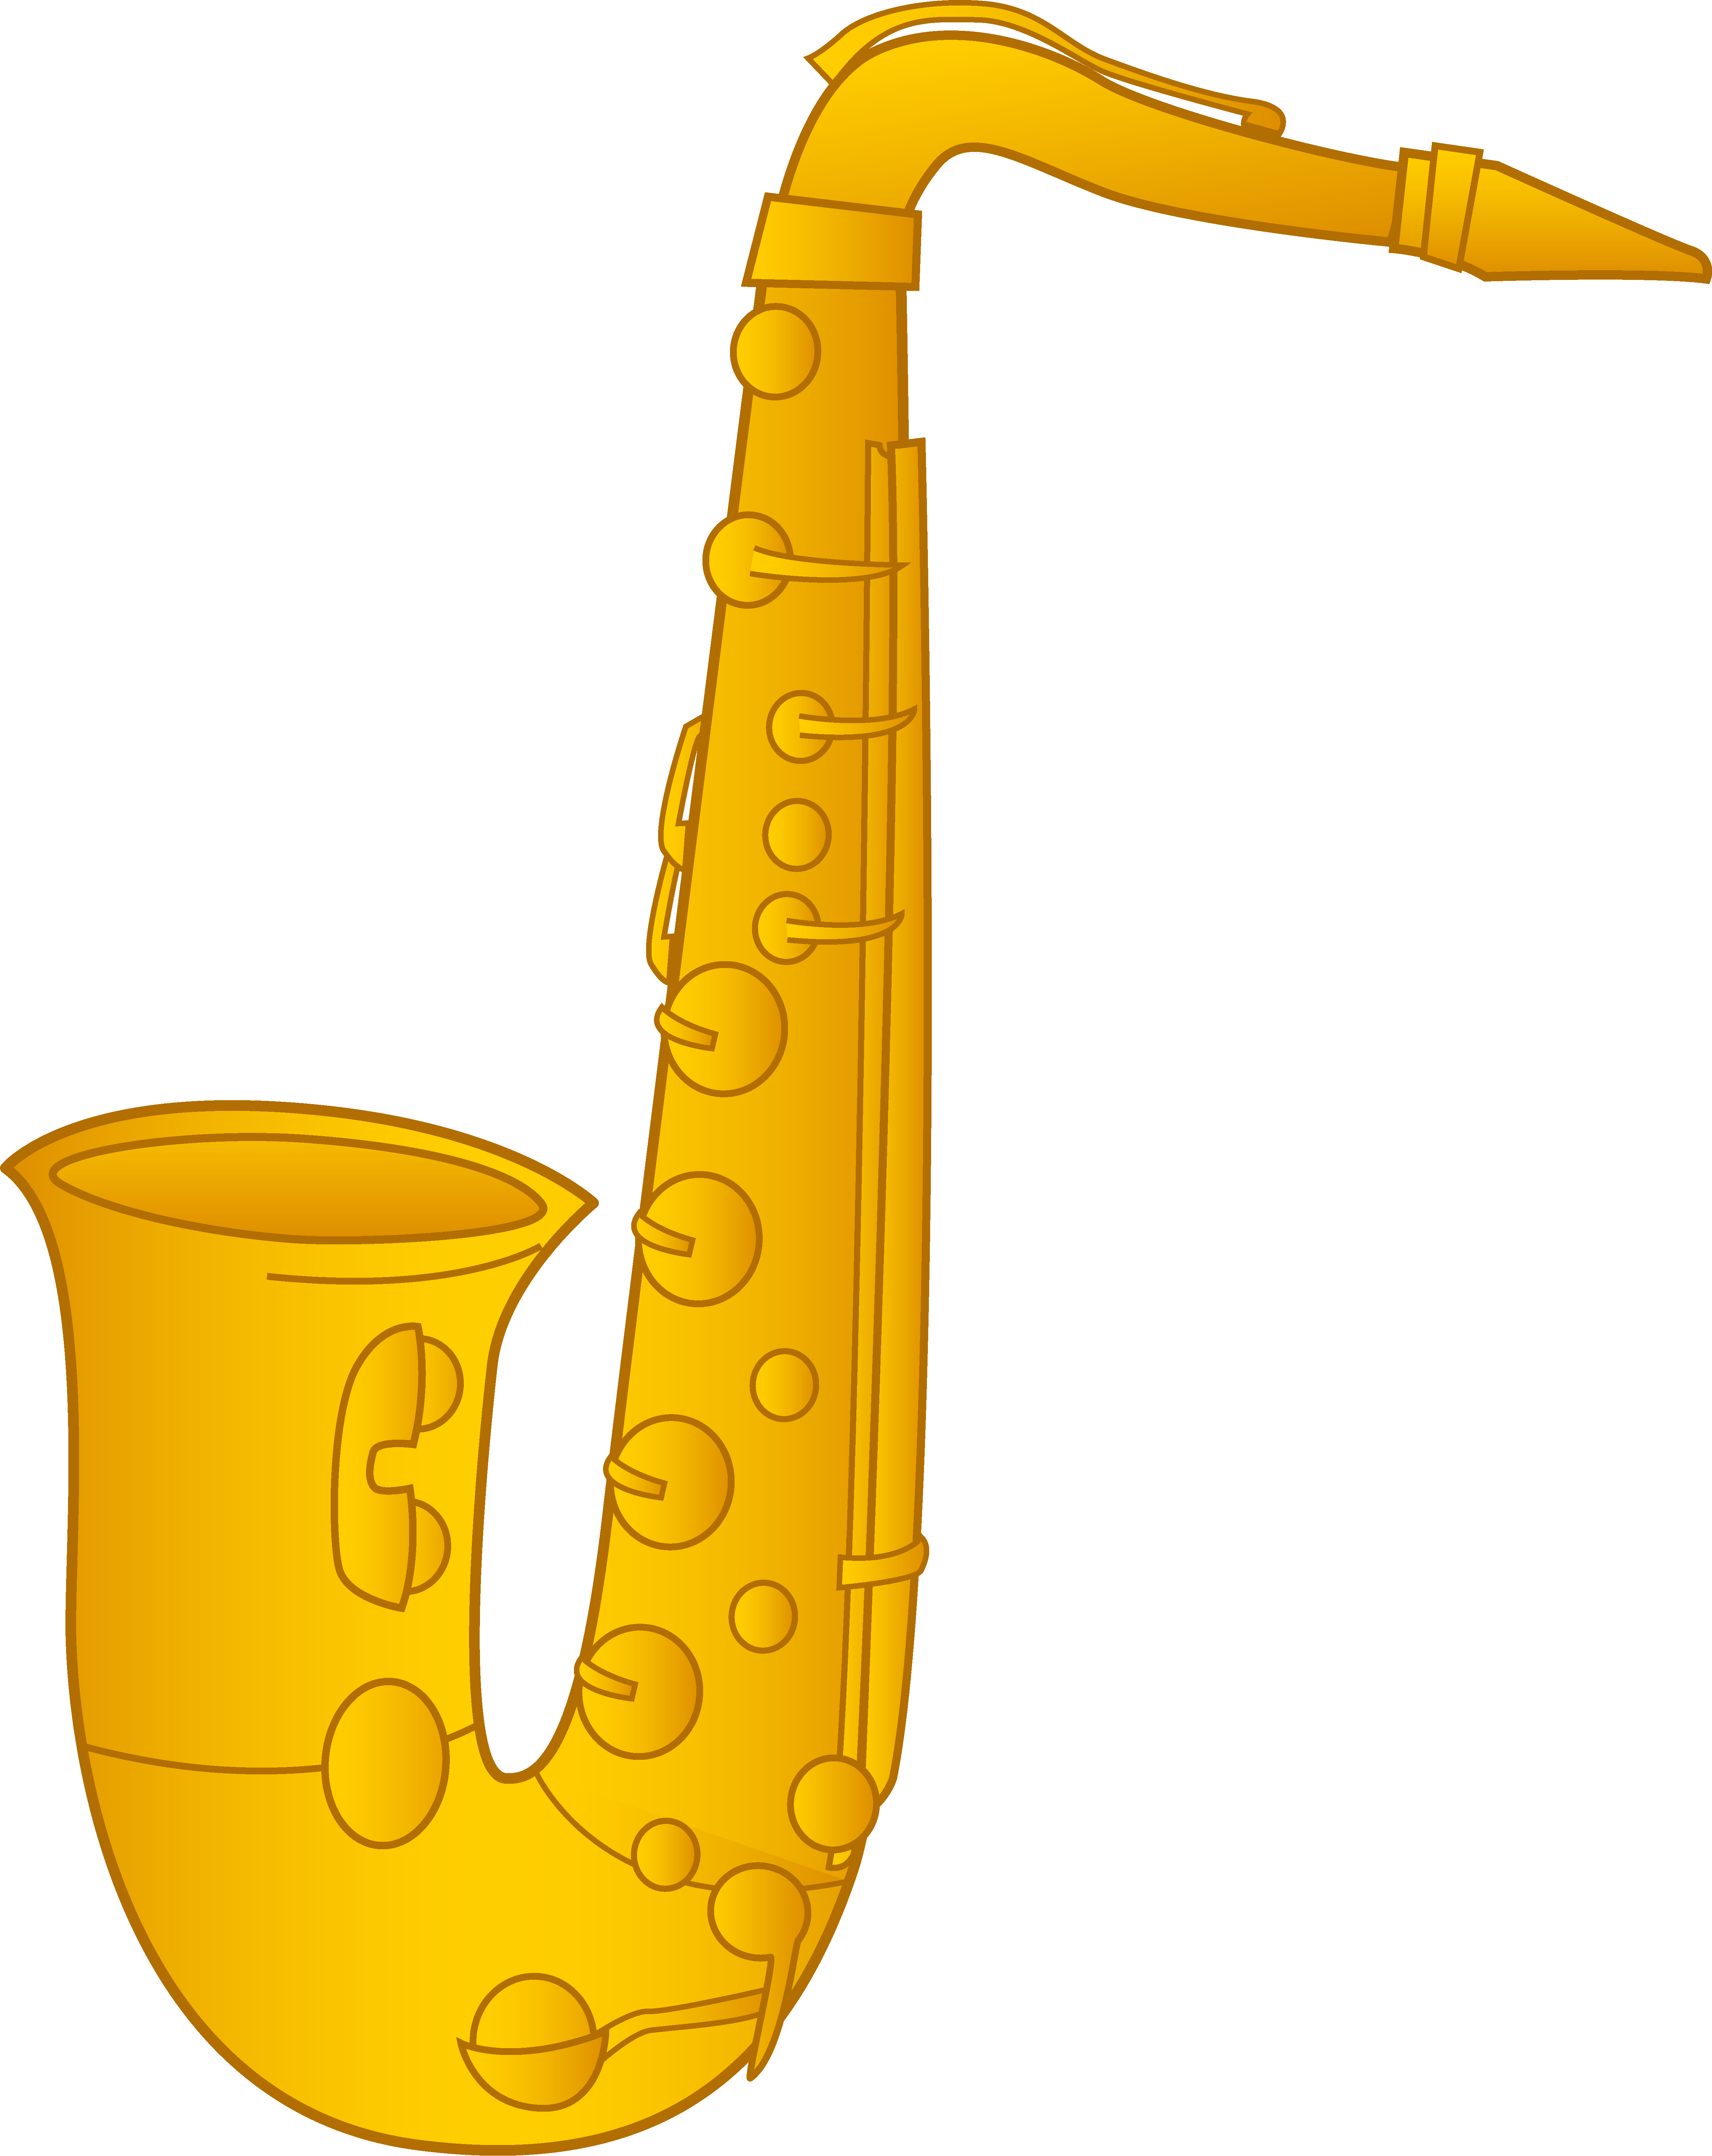 collection of instrument. Clarinet clipart instrumentong